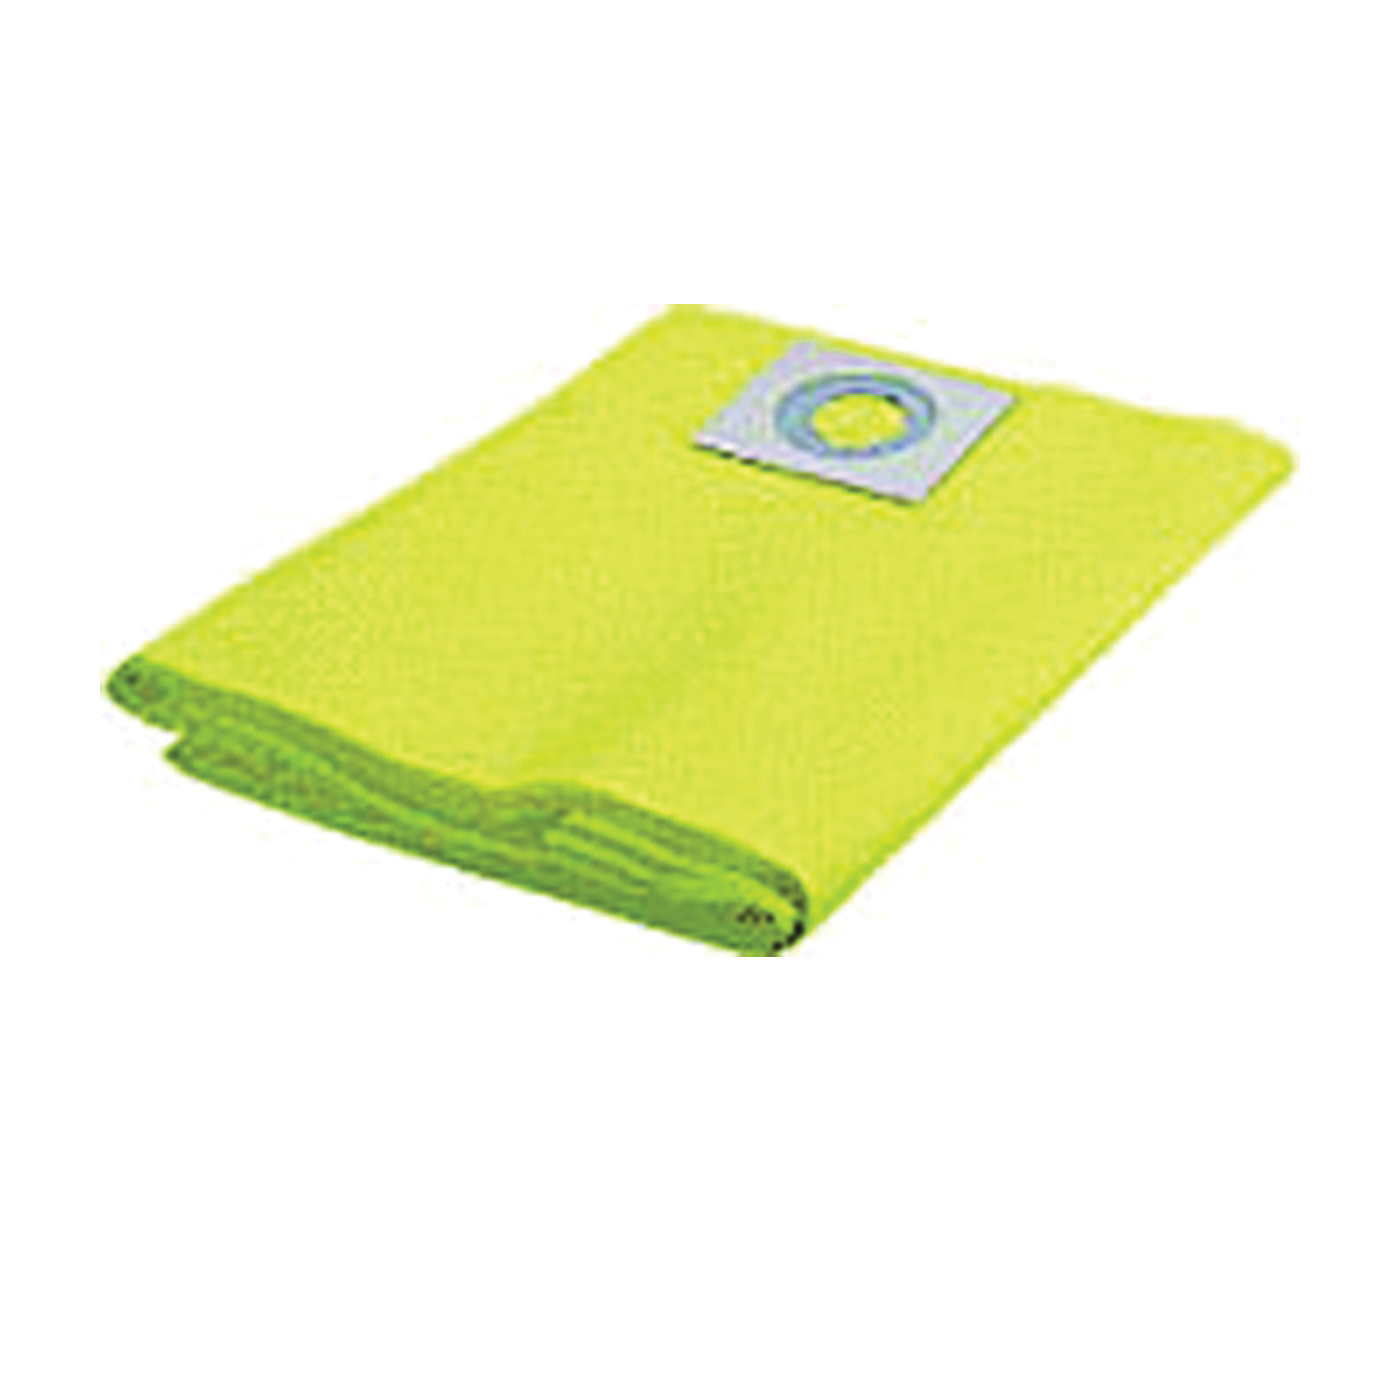 Picture of Shop-Vac 9067100 Filter Bag, 5 to 8 gal Capacity